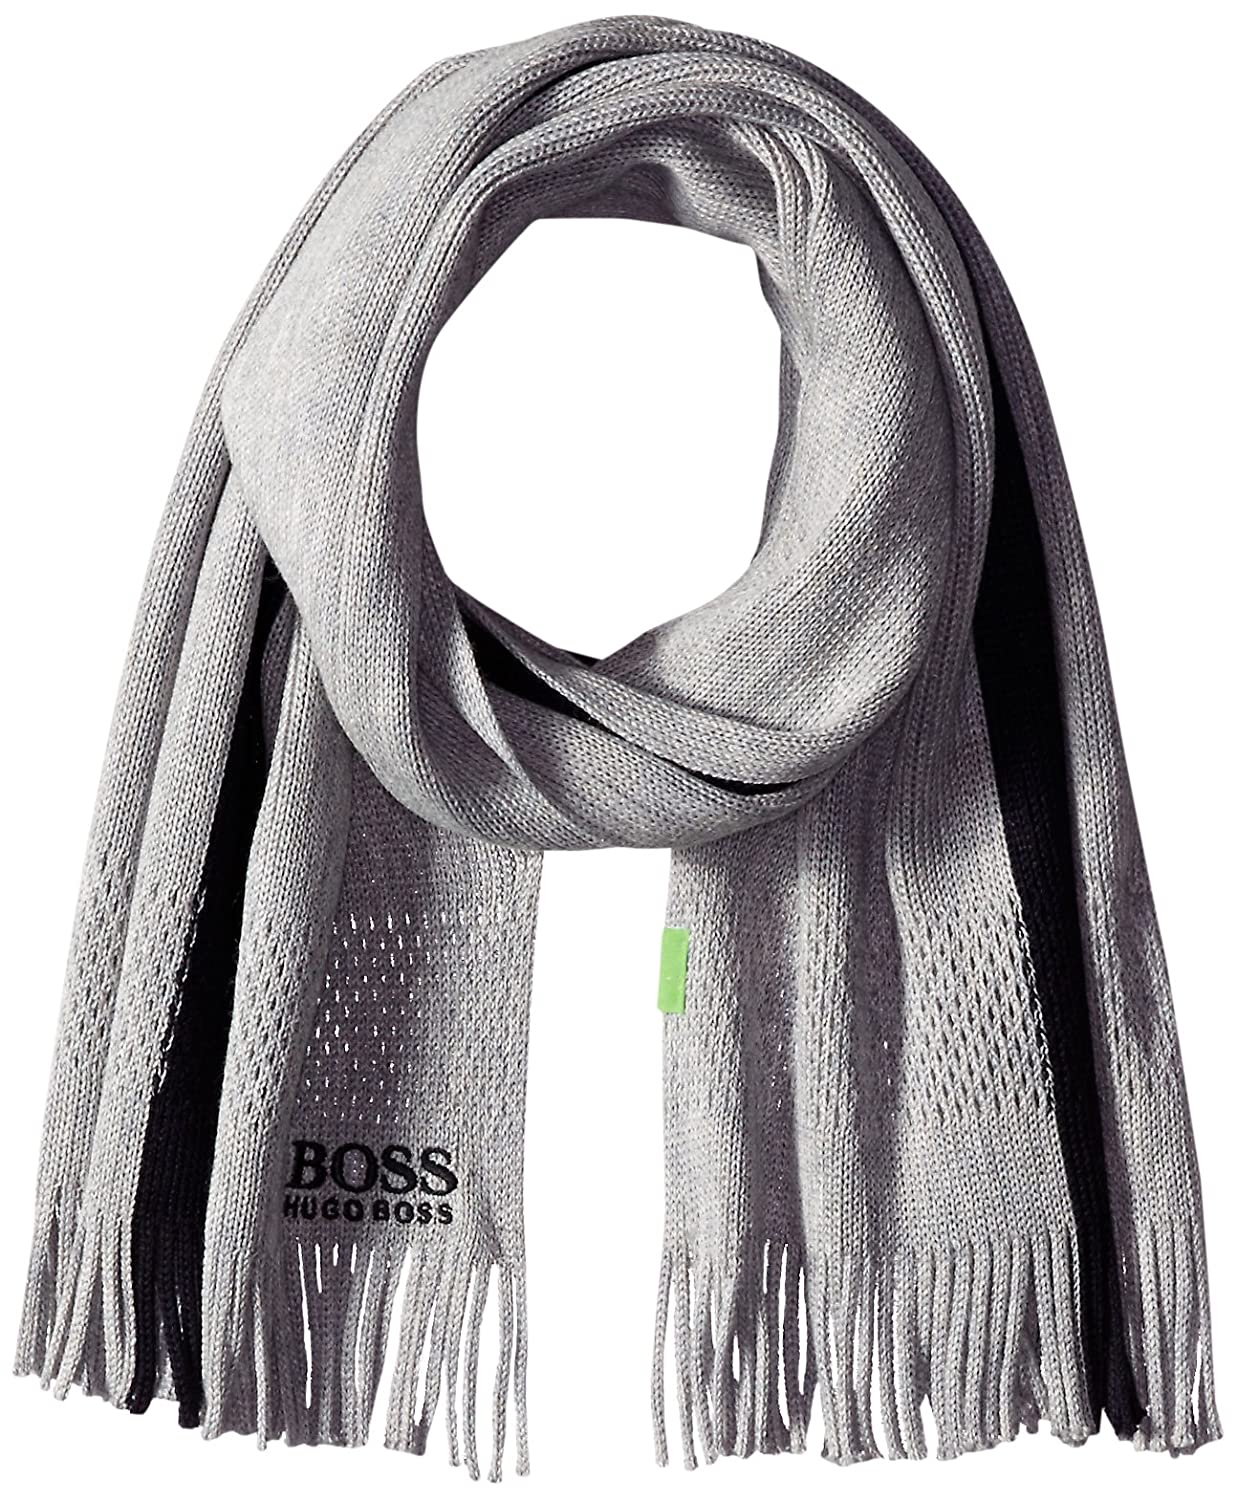 BOSS Green Men's Knitter Scarf Grey One Size 50295043